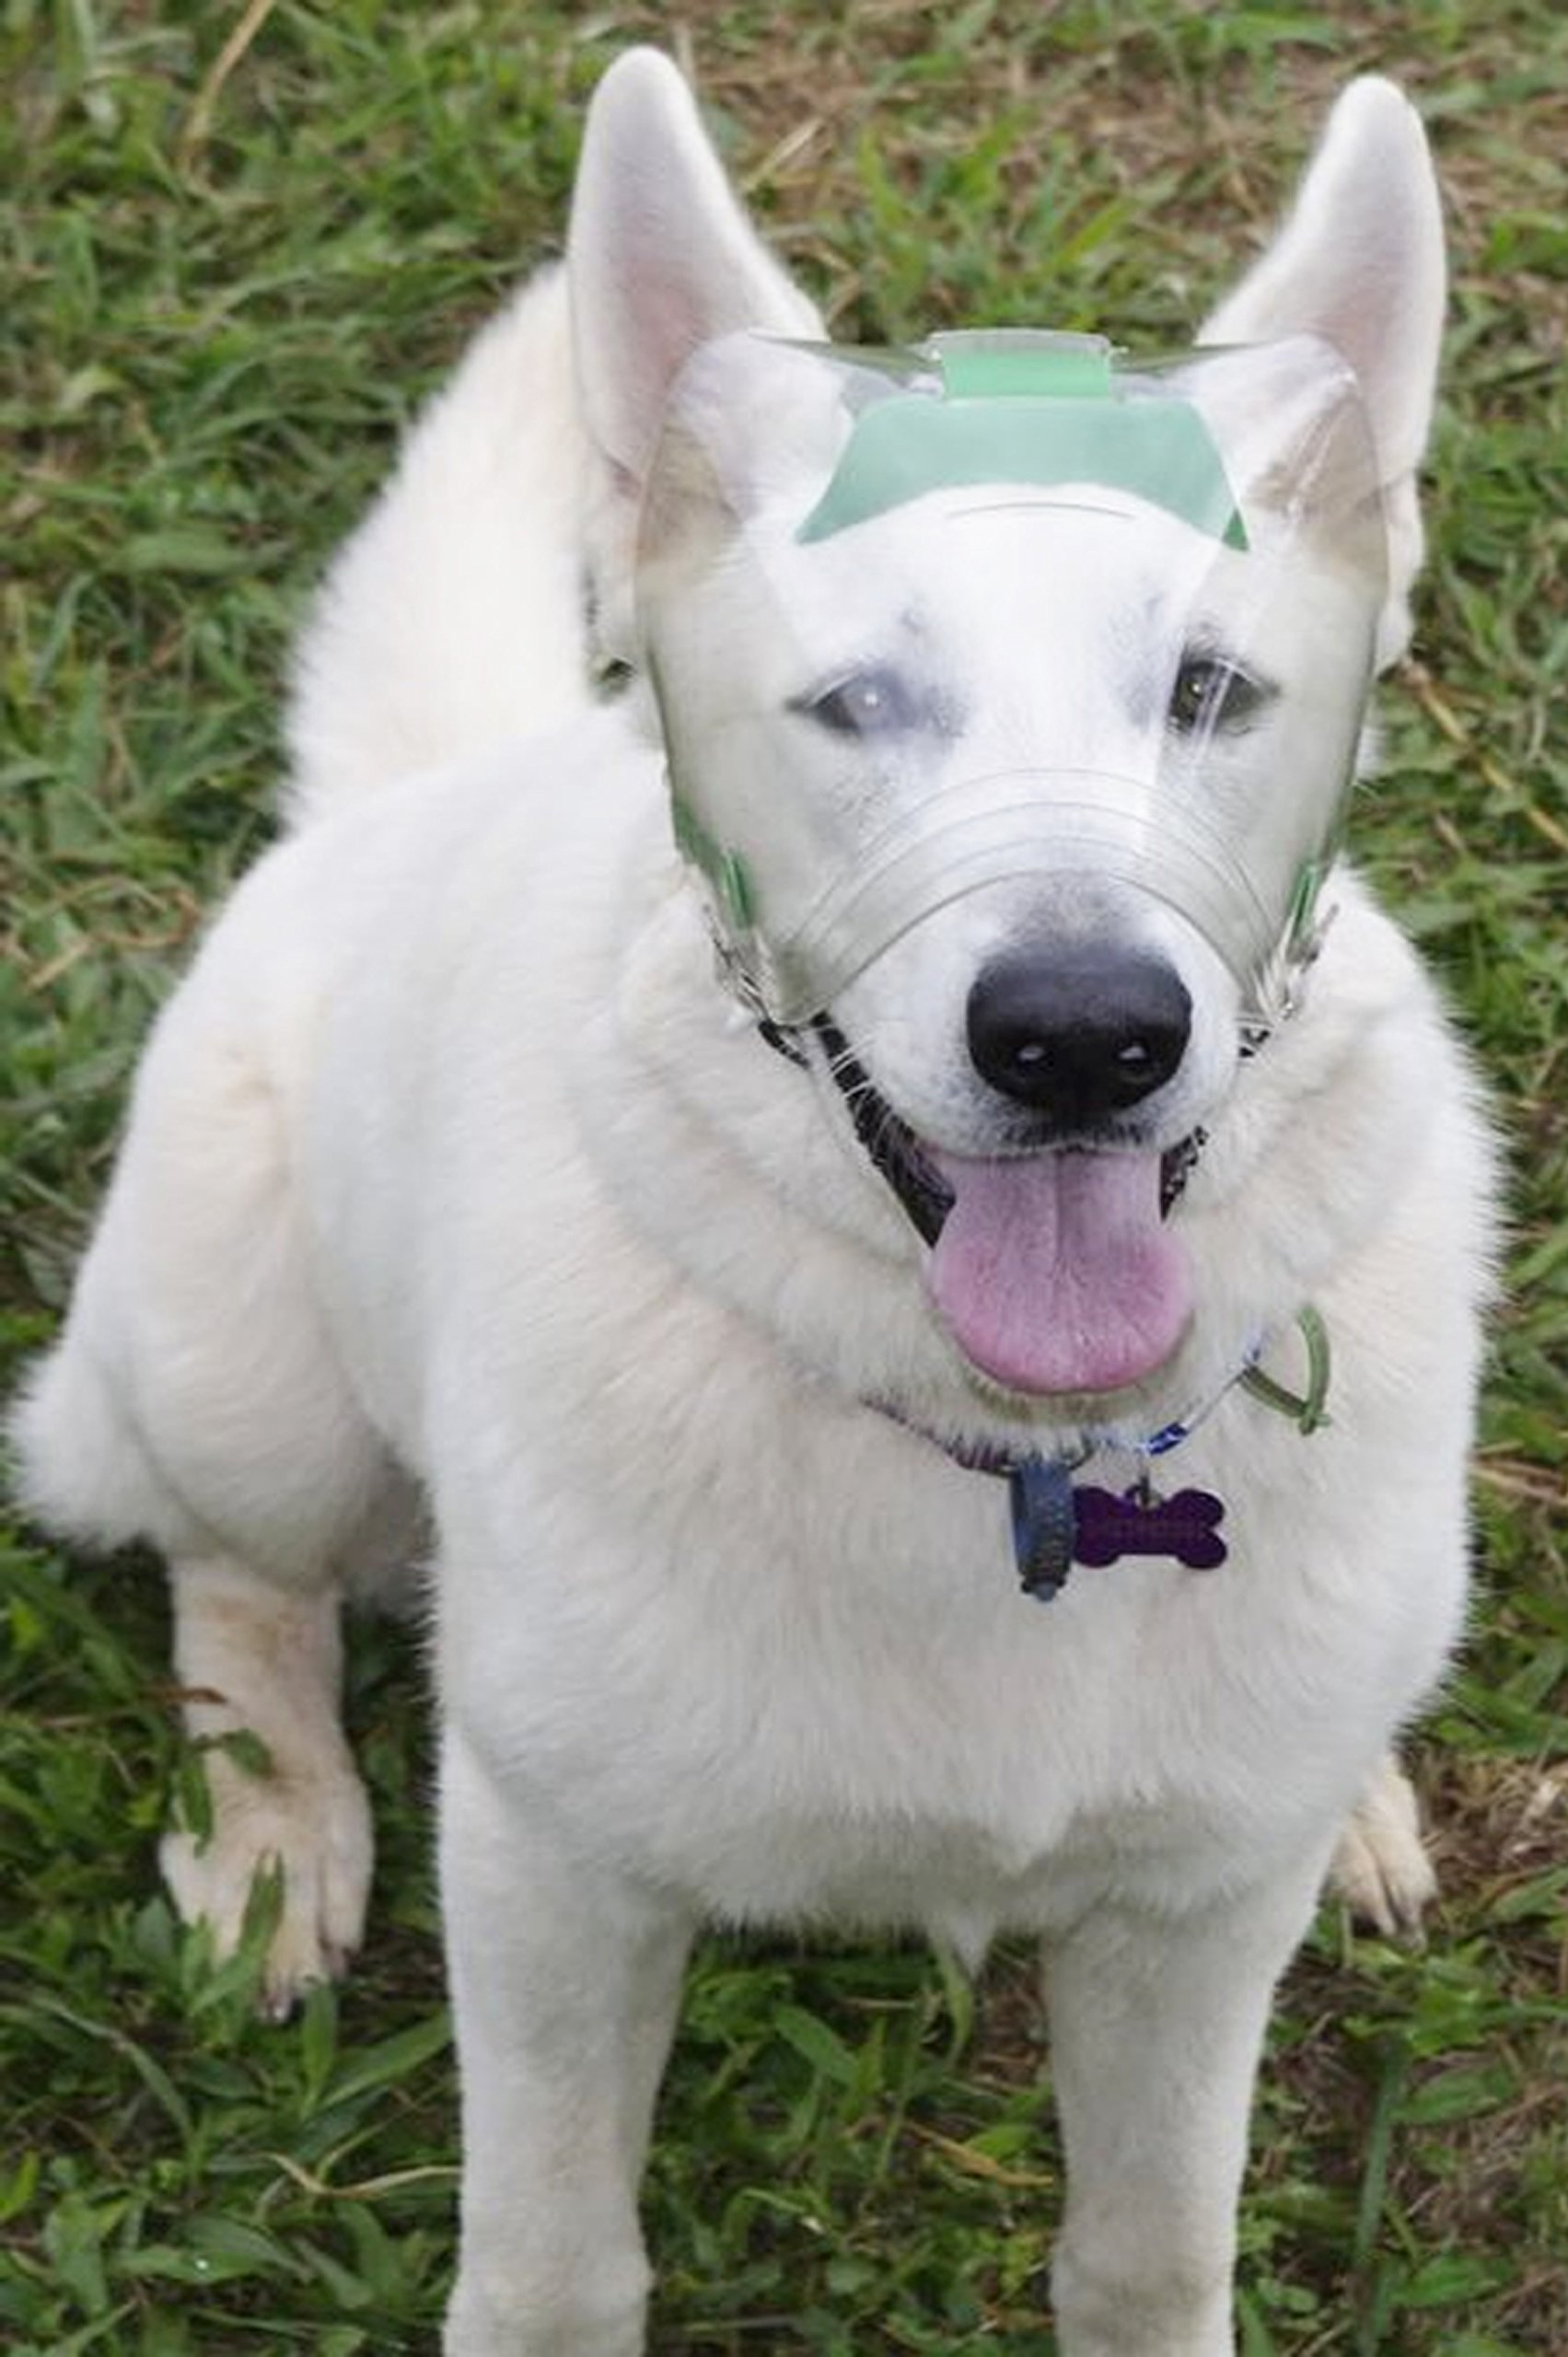 Optivizor Eye Protection for Dogs - Large 73-99 pounds, Head Measuerment 8.3-9.4 inches by Optivizor